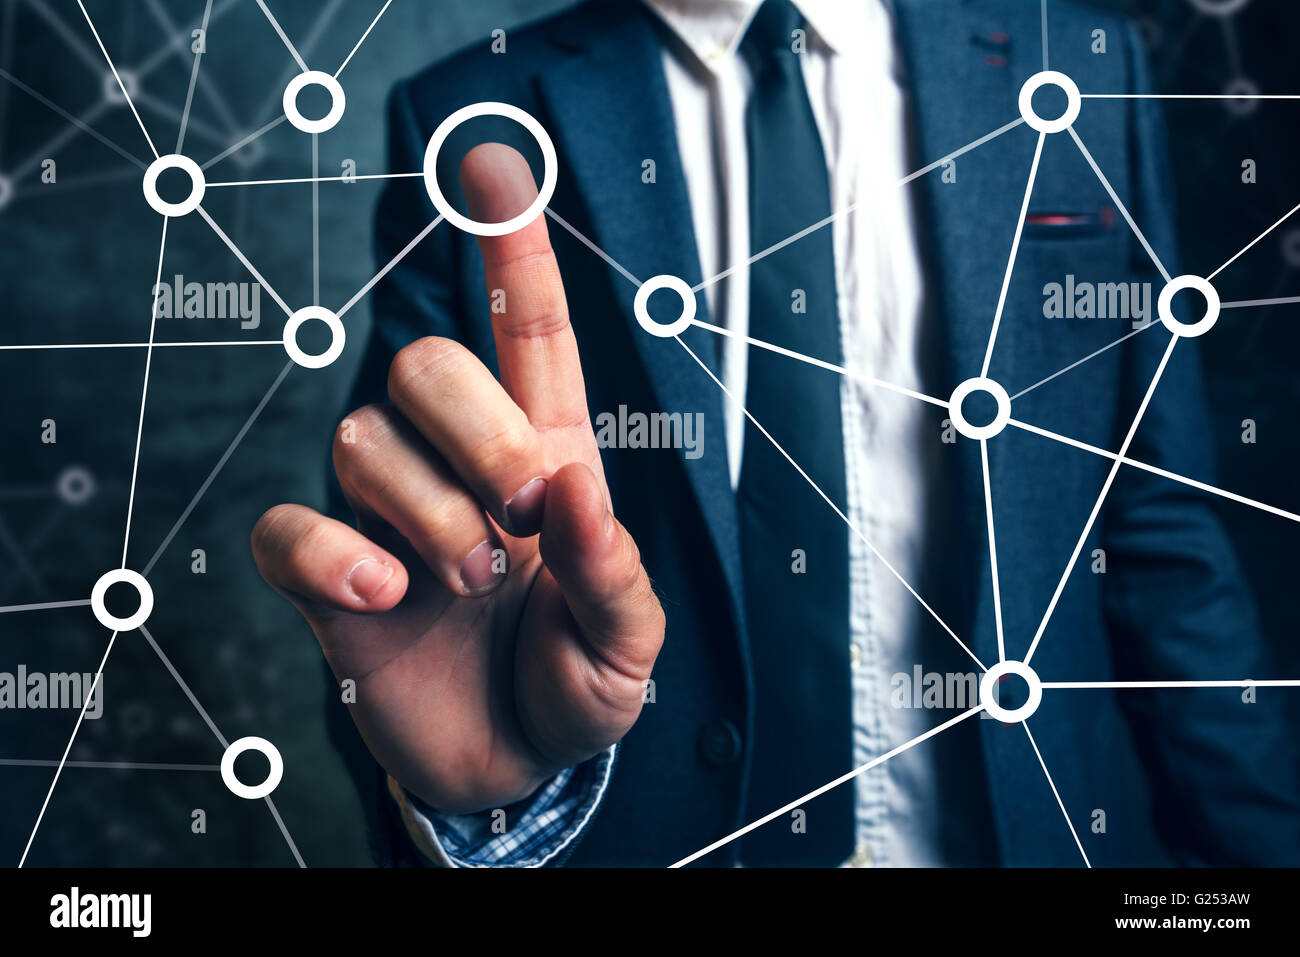 Businessman connecting the dots in business project management, social networking or teamwork organization. - Stock Image